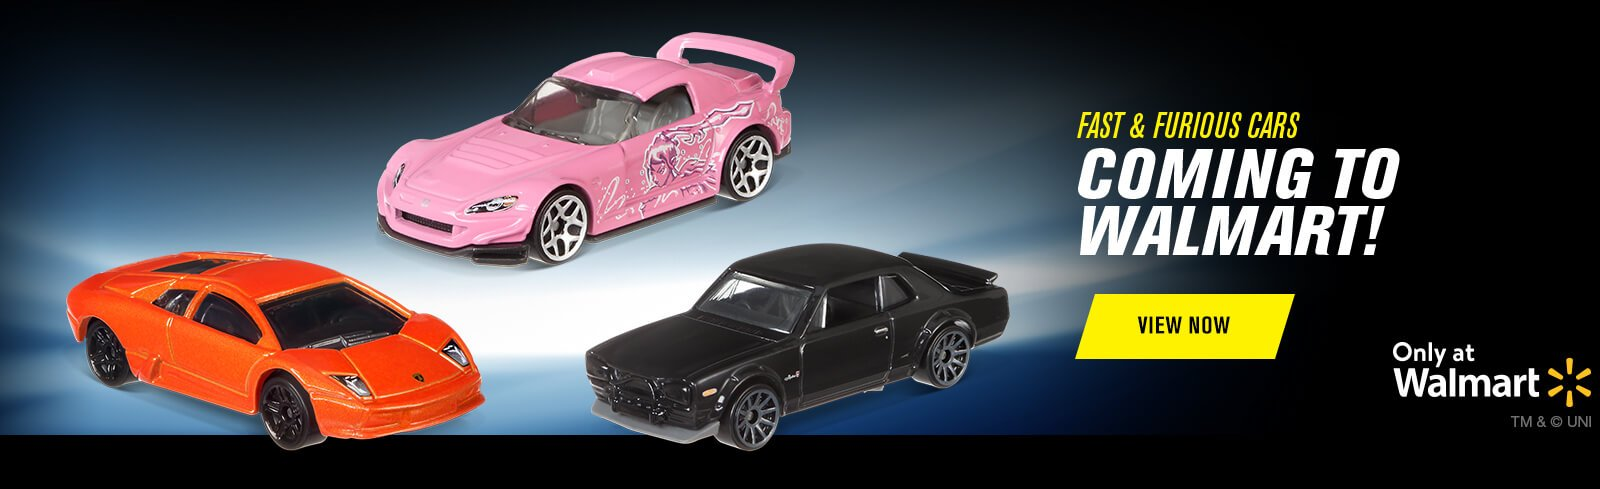 Fast & Furious Cars Coming to Walmart!